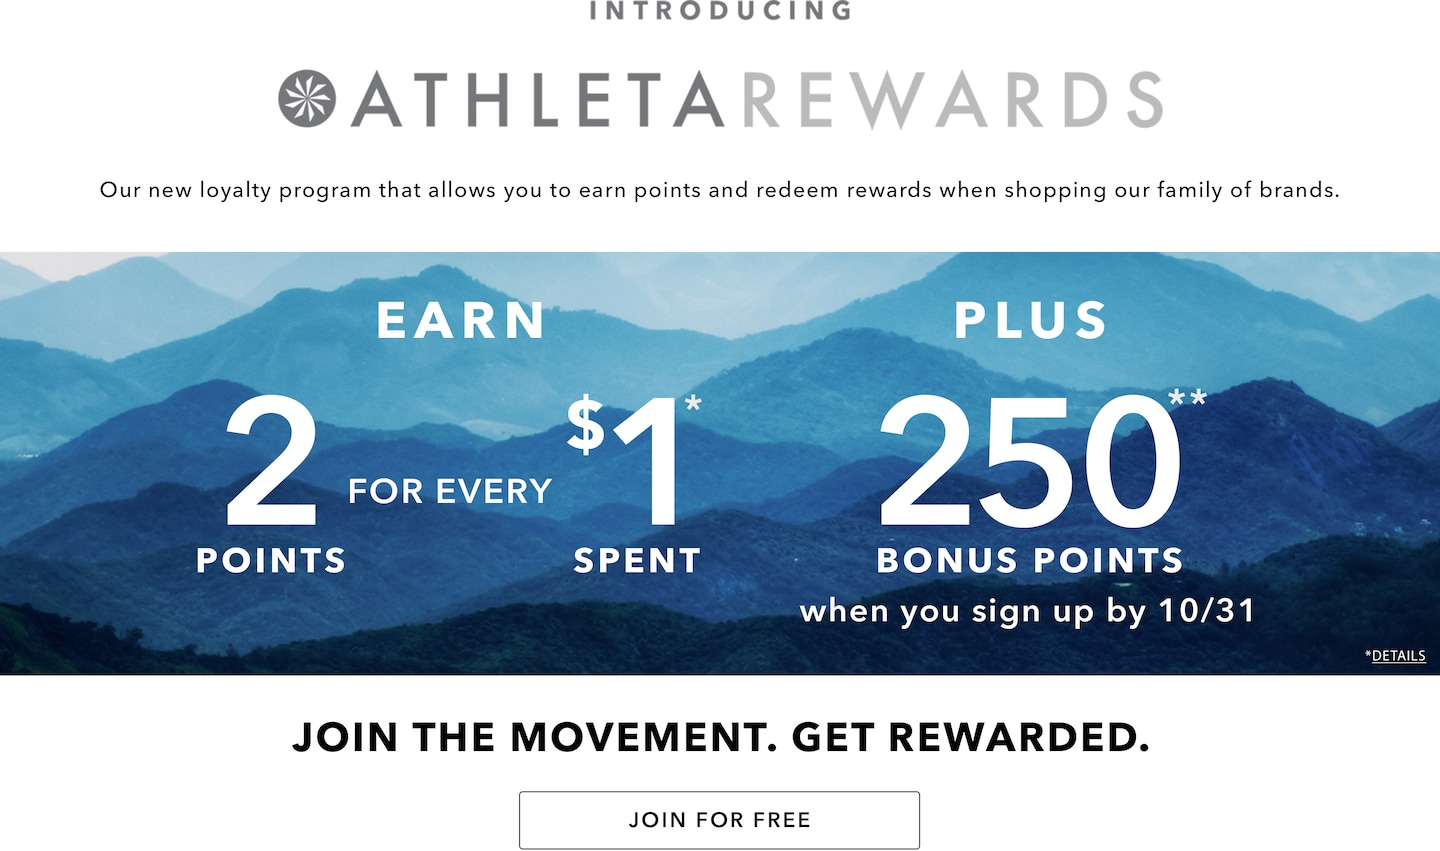 Introducing Athleta Rewards. Join for Free